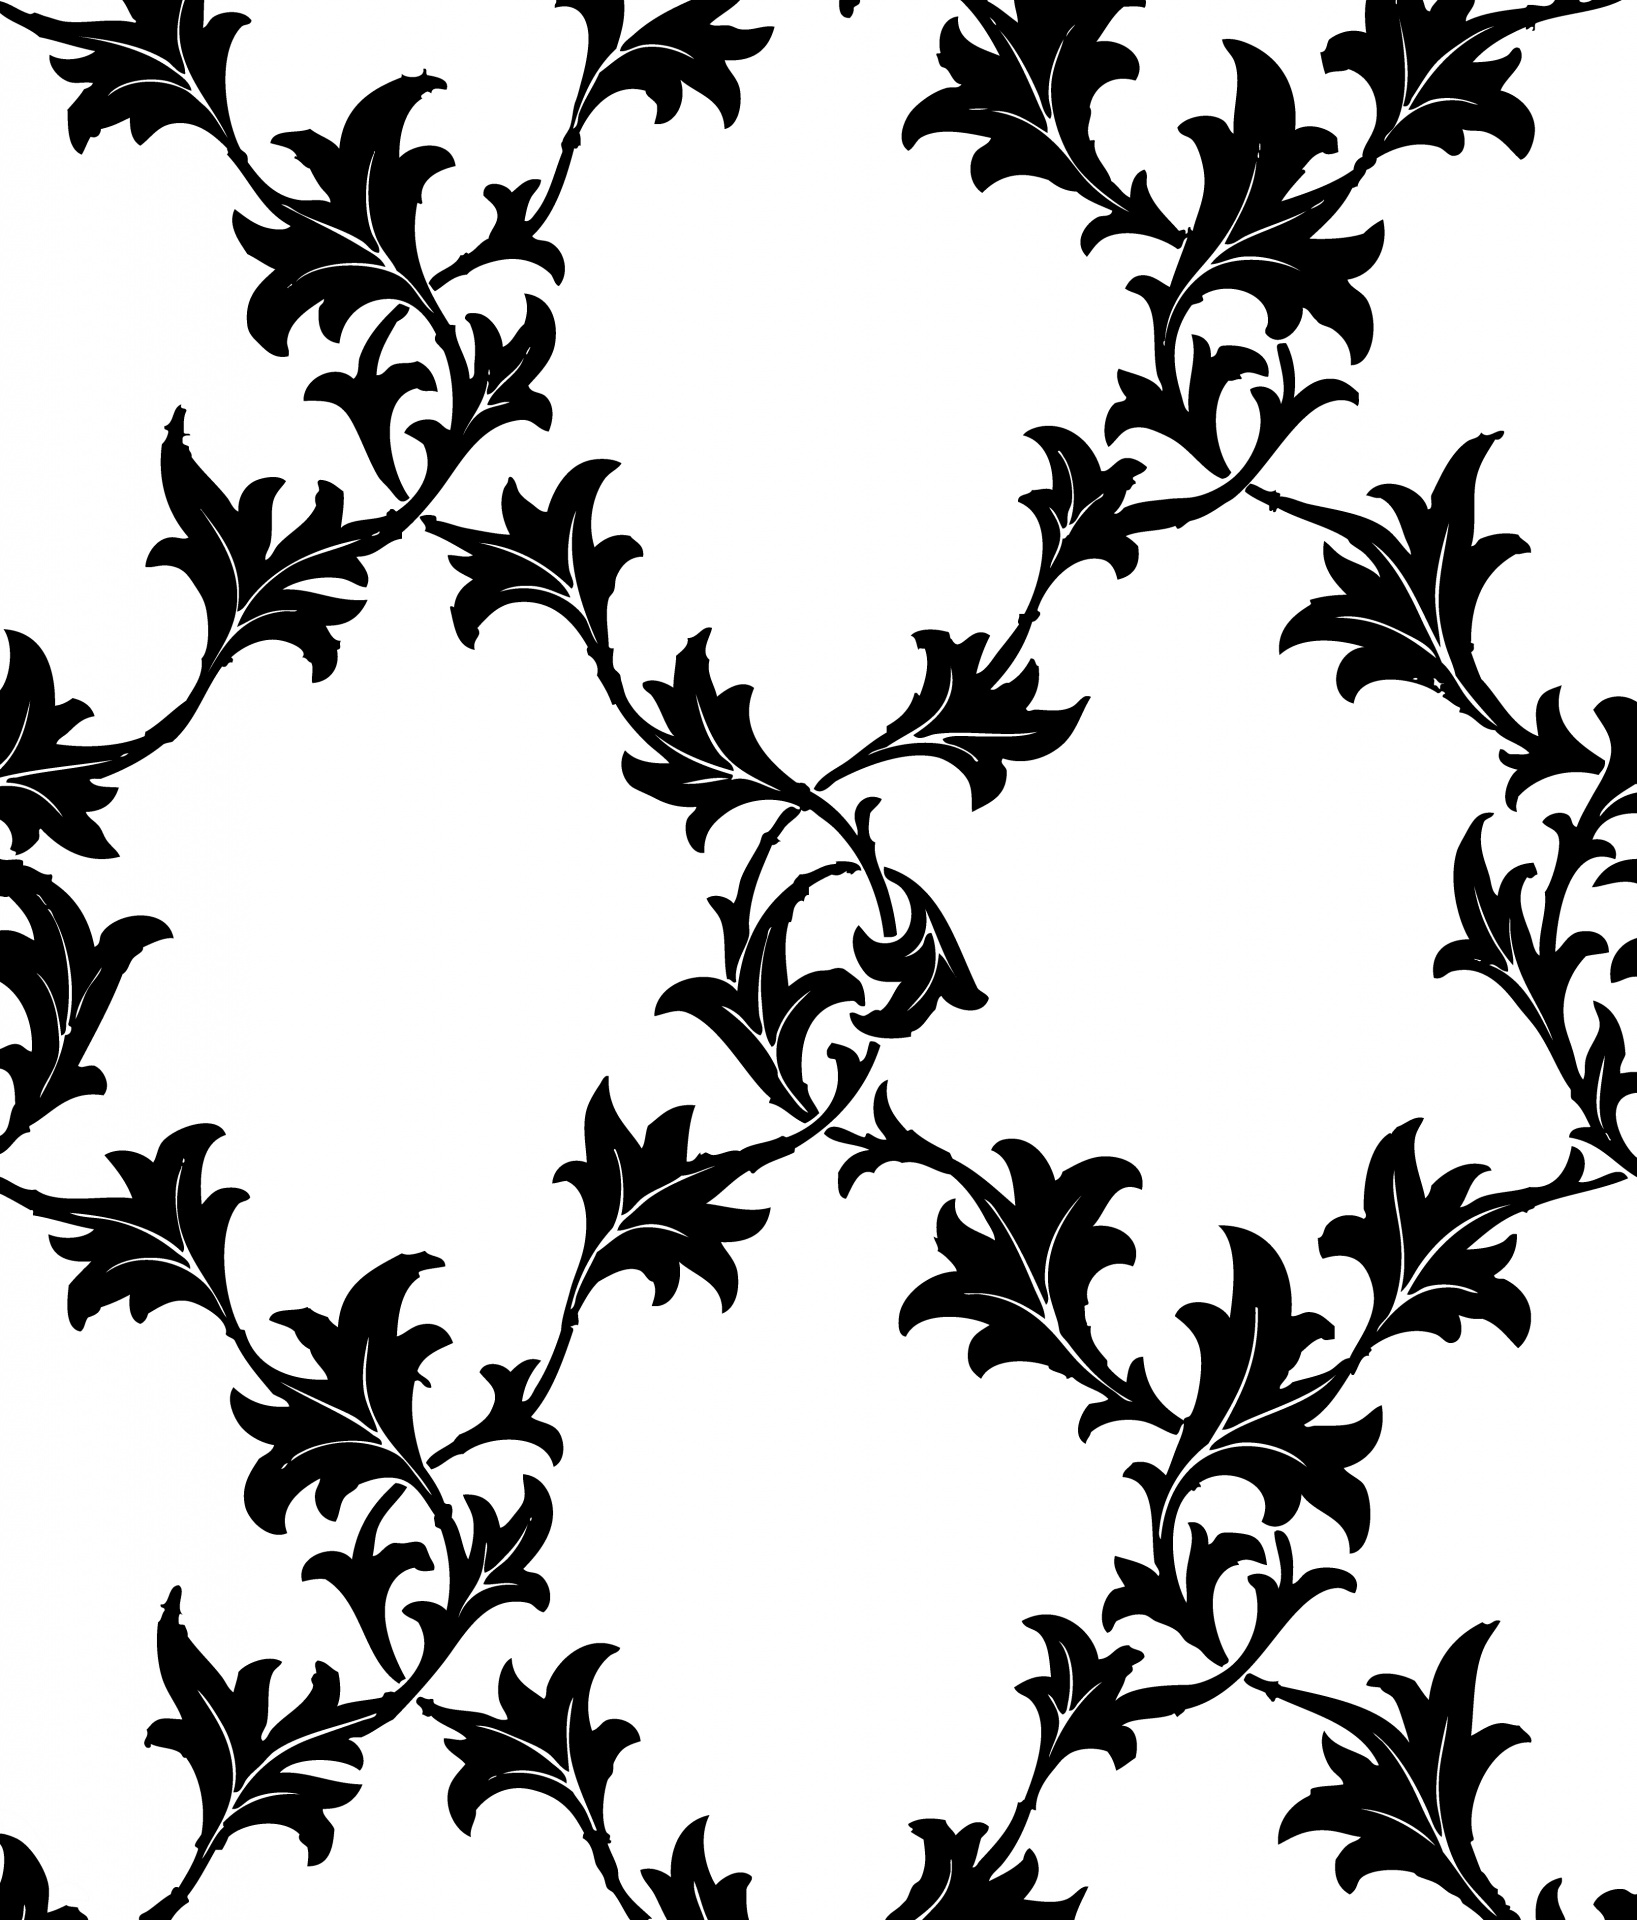 Pattern clipart images jpg transparent Leaves,clipart,background,pattern,seamless - free photo from ... jpg transparent